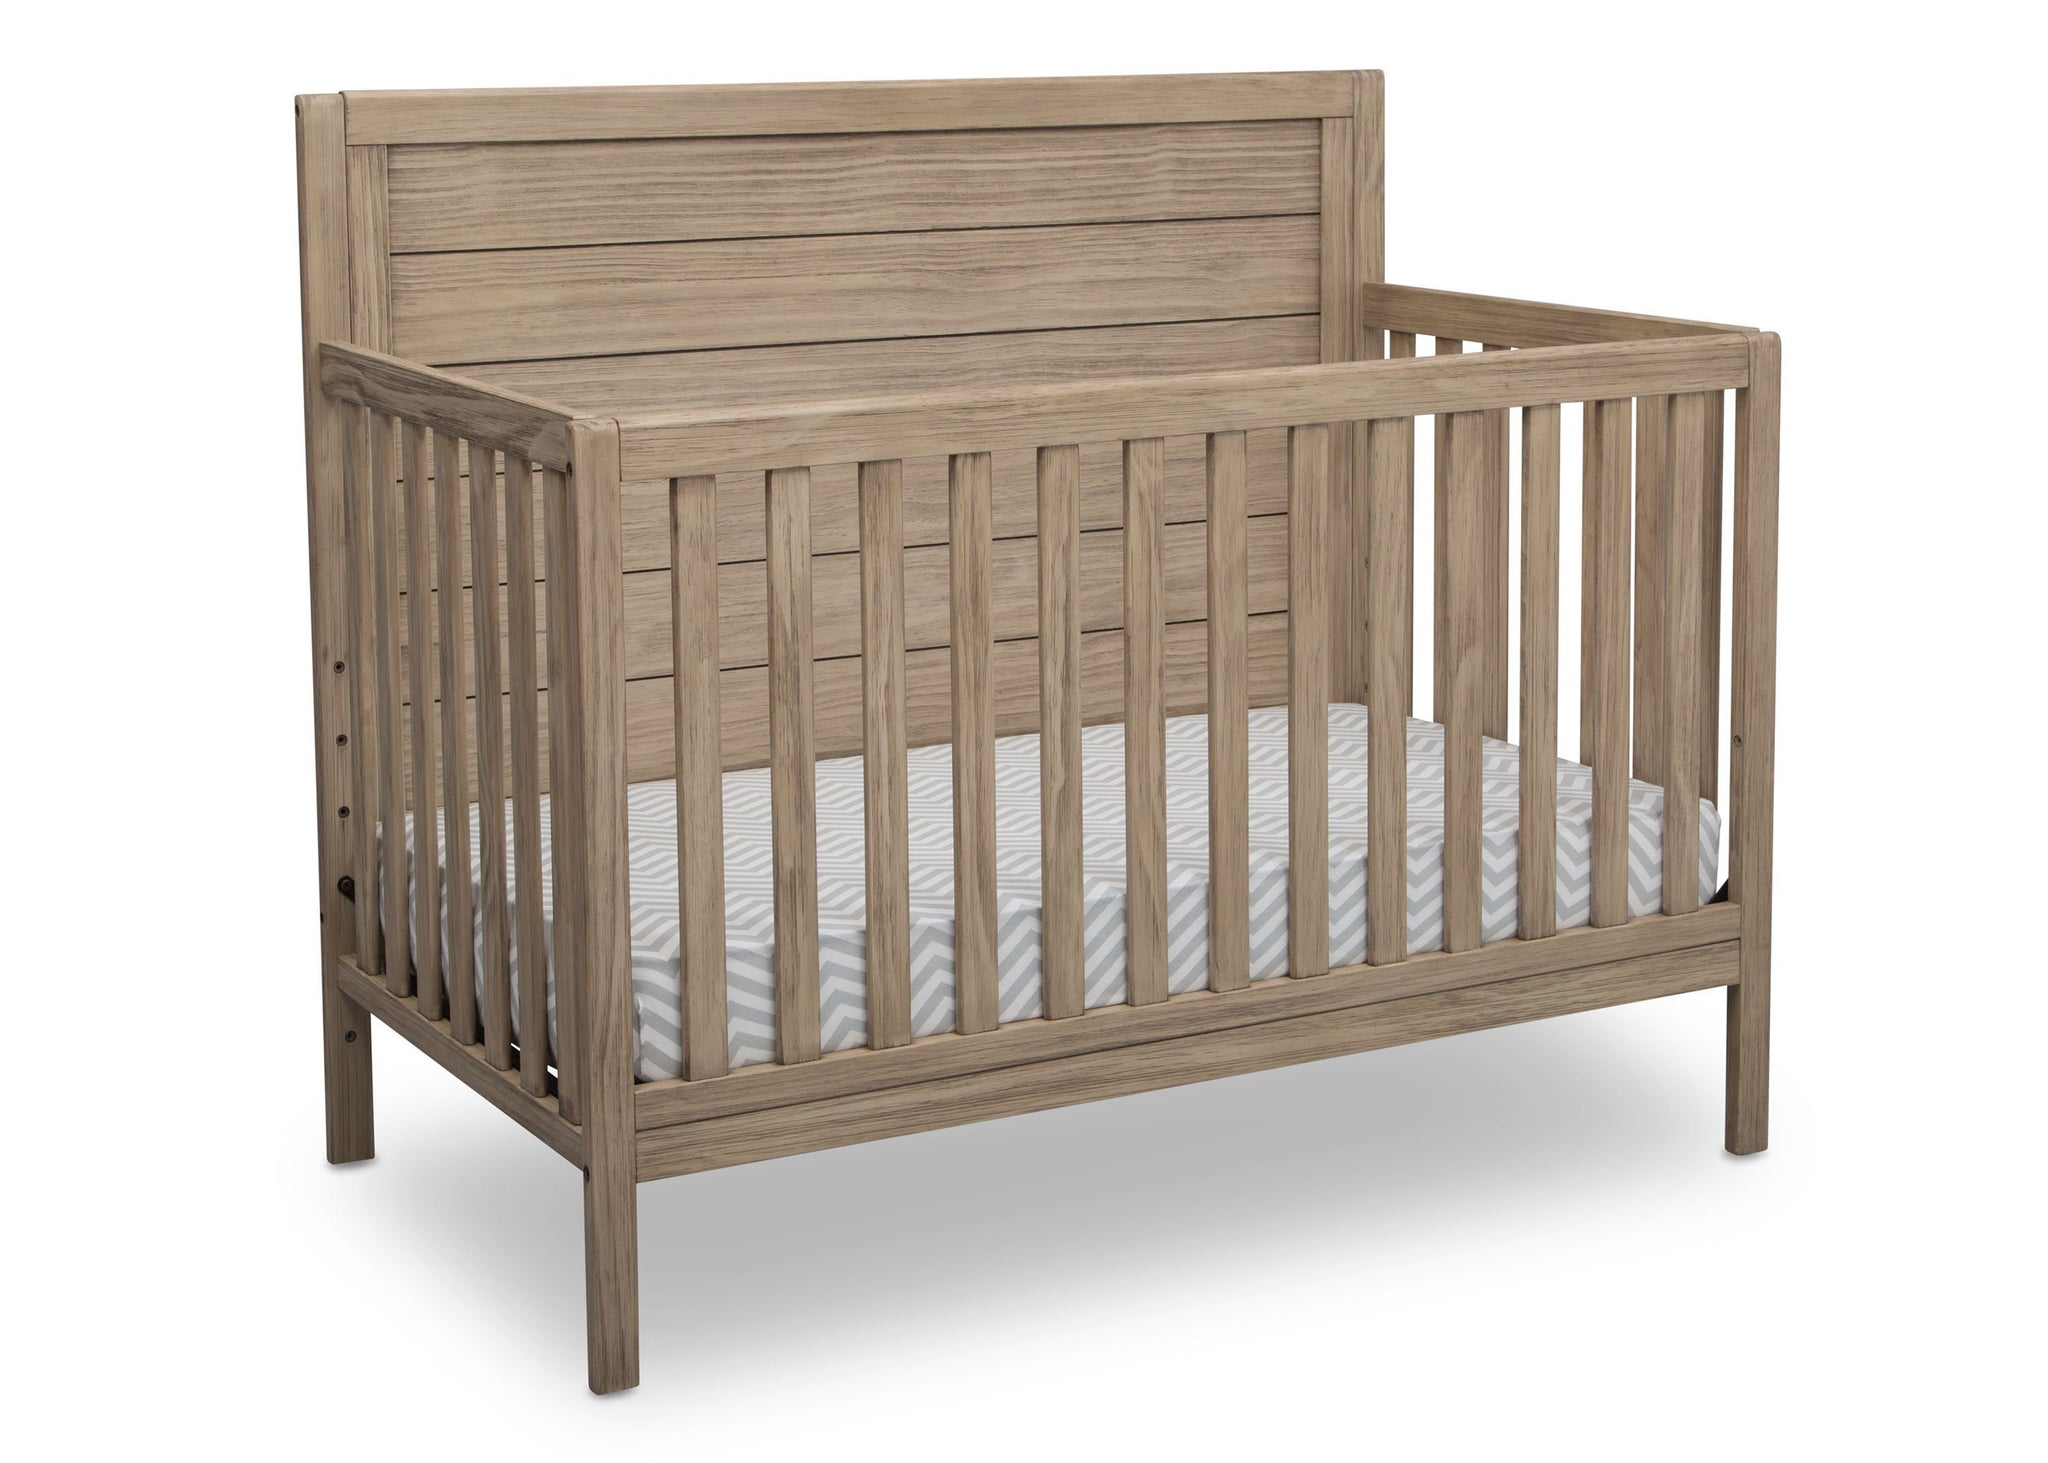 Serta Rustic Driftwood (112) Cambridge 4-in-1 Converiblel Crib, Angled View b3b